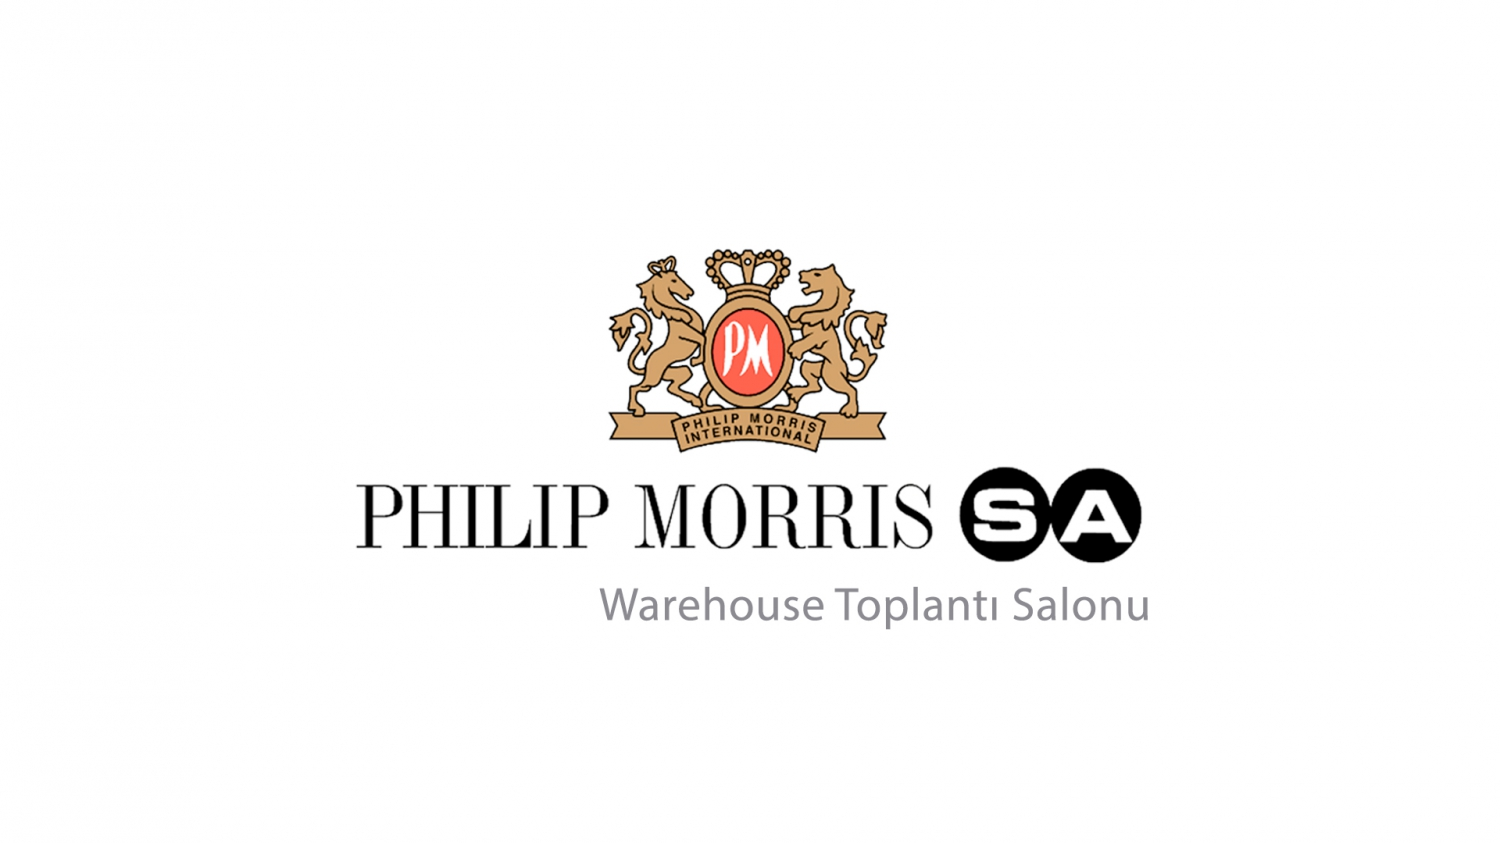 PHILIP MORRIS - WAREHOUSE TOPLANTI ODASI